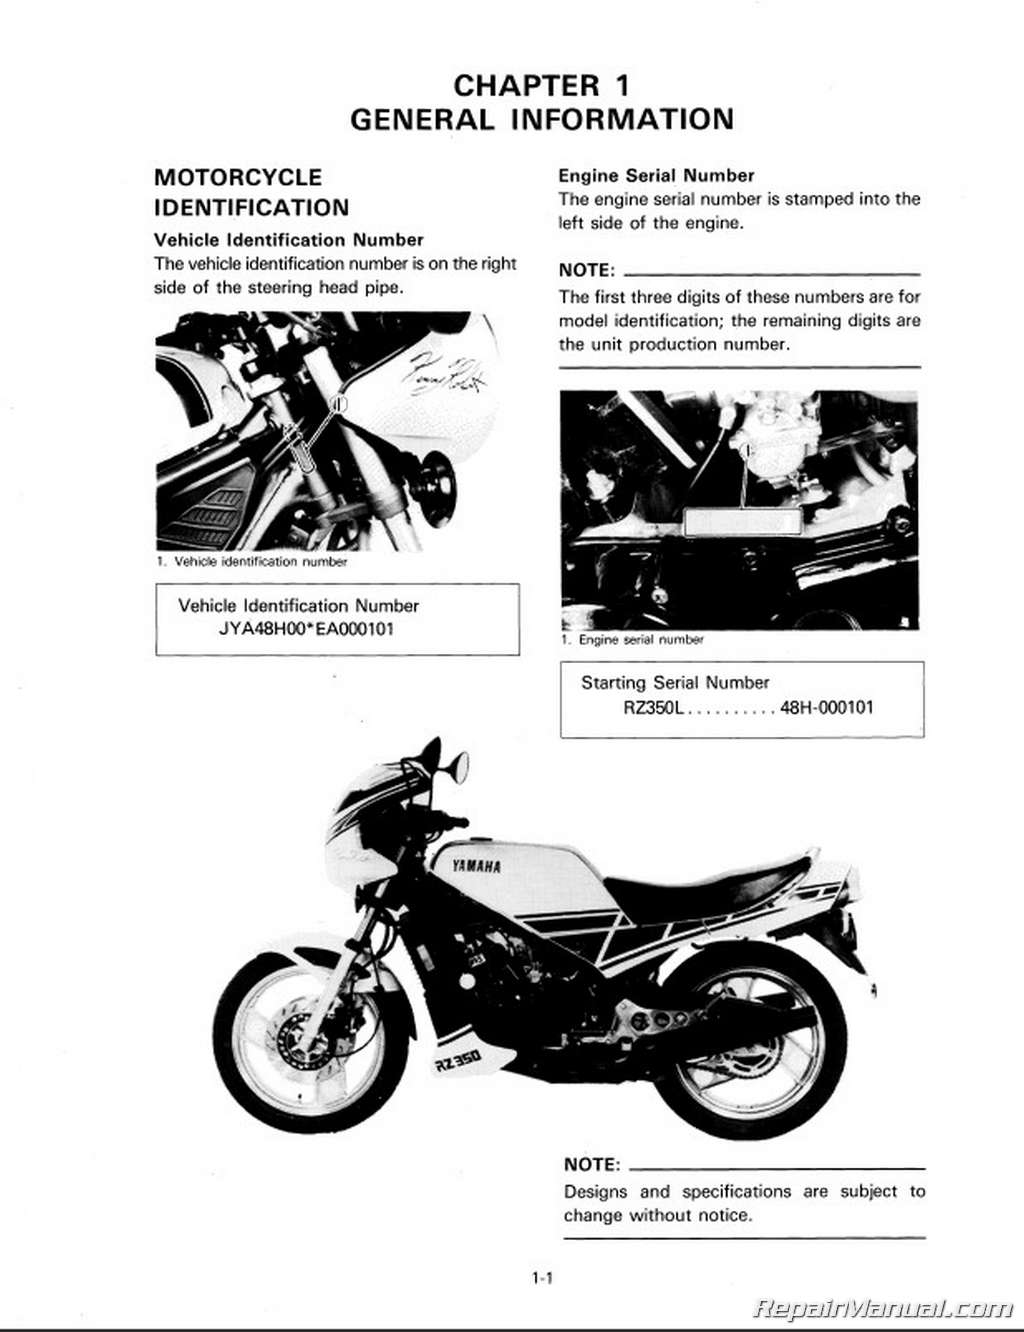 Bsa Motorcycle Repair Manuals Car Motorcycle Chilton